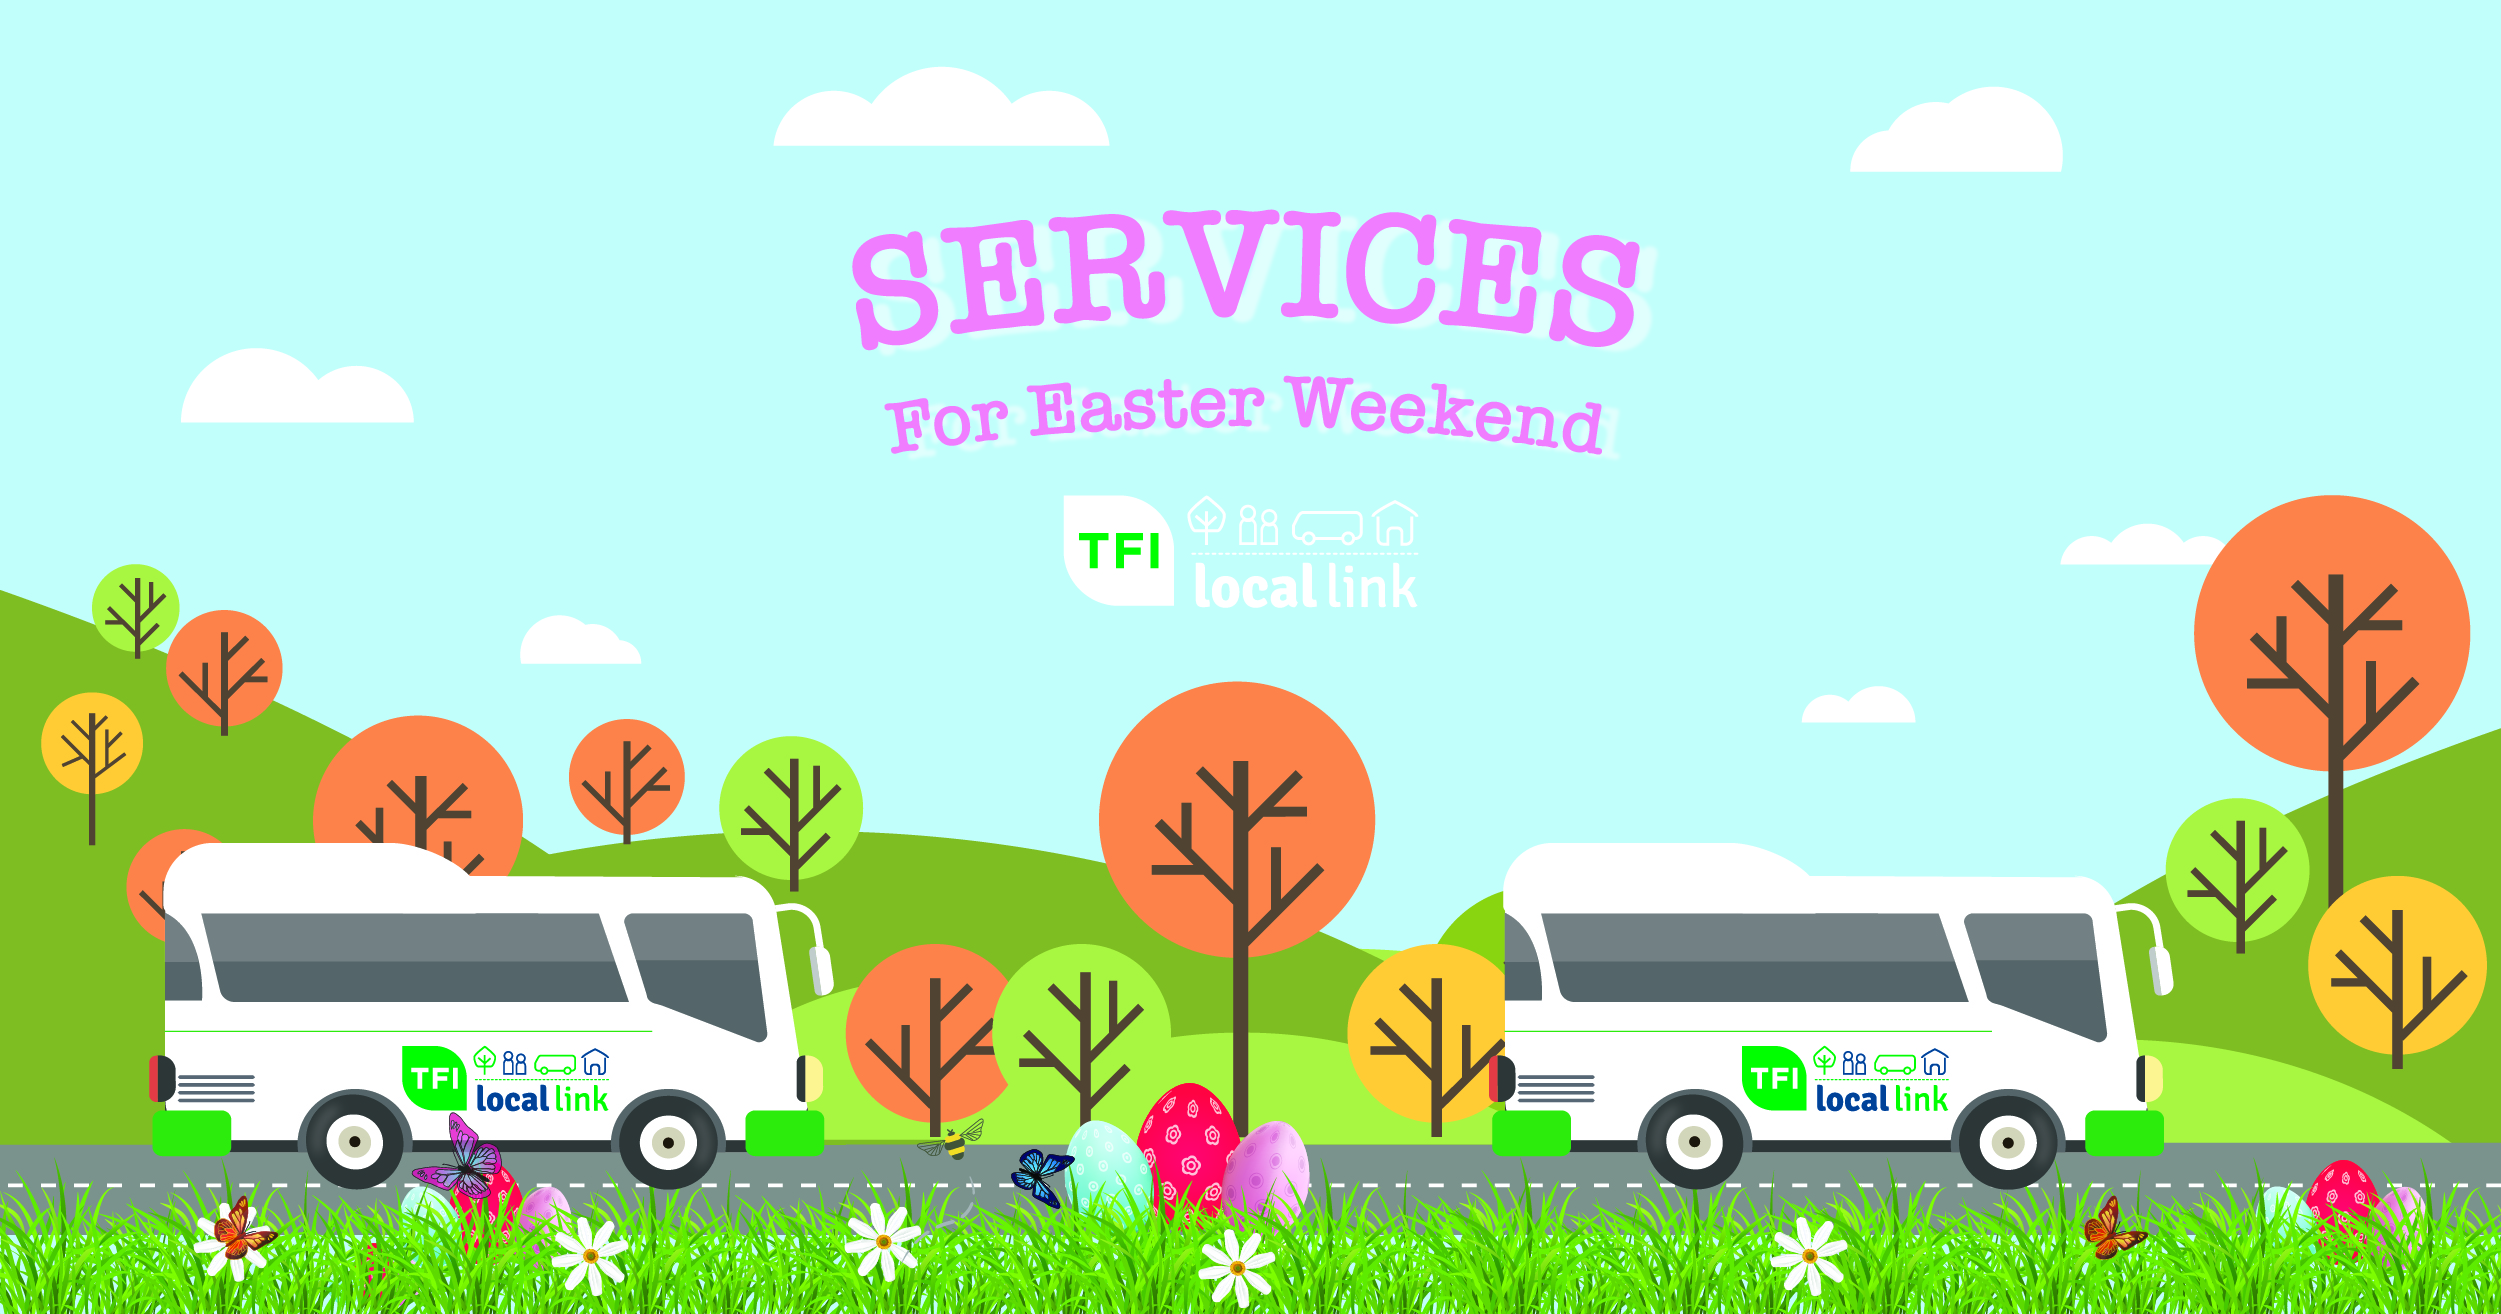 Local Link Easter Services